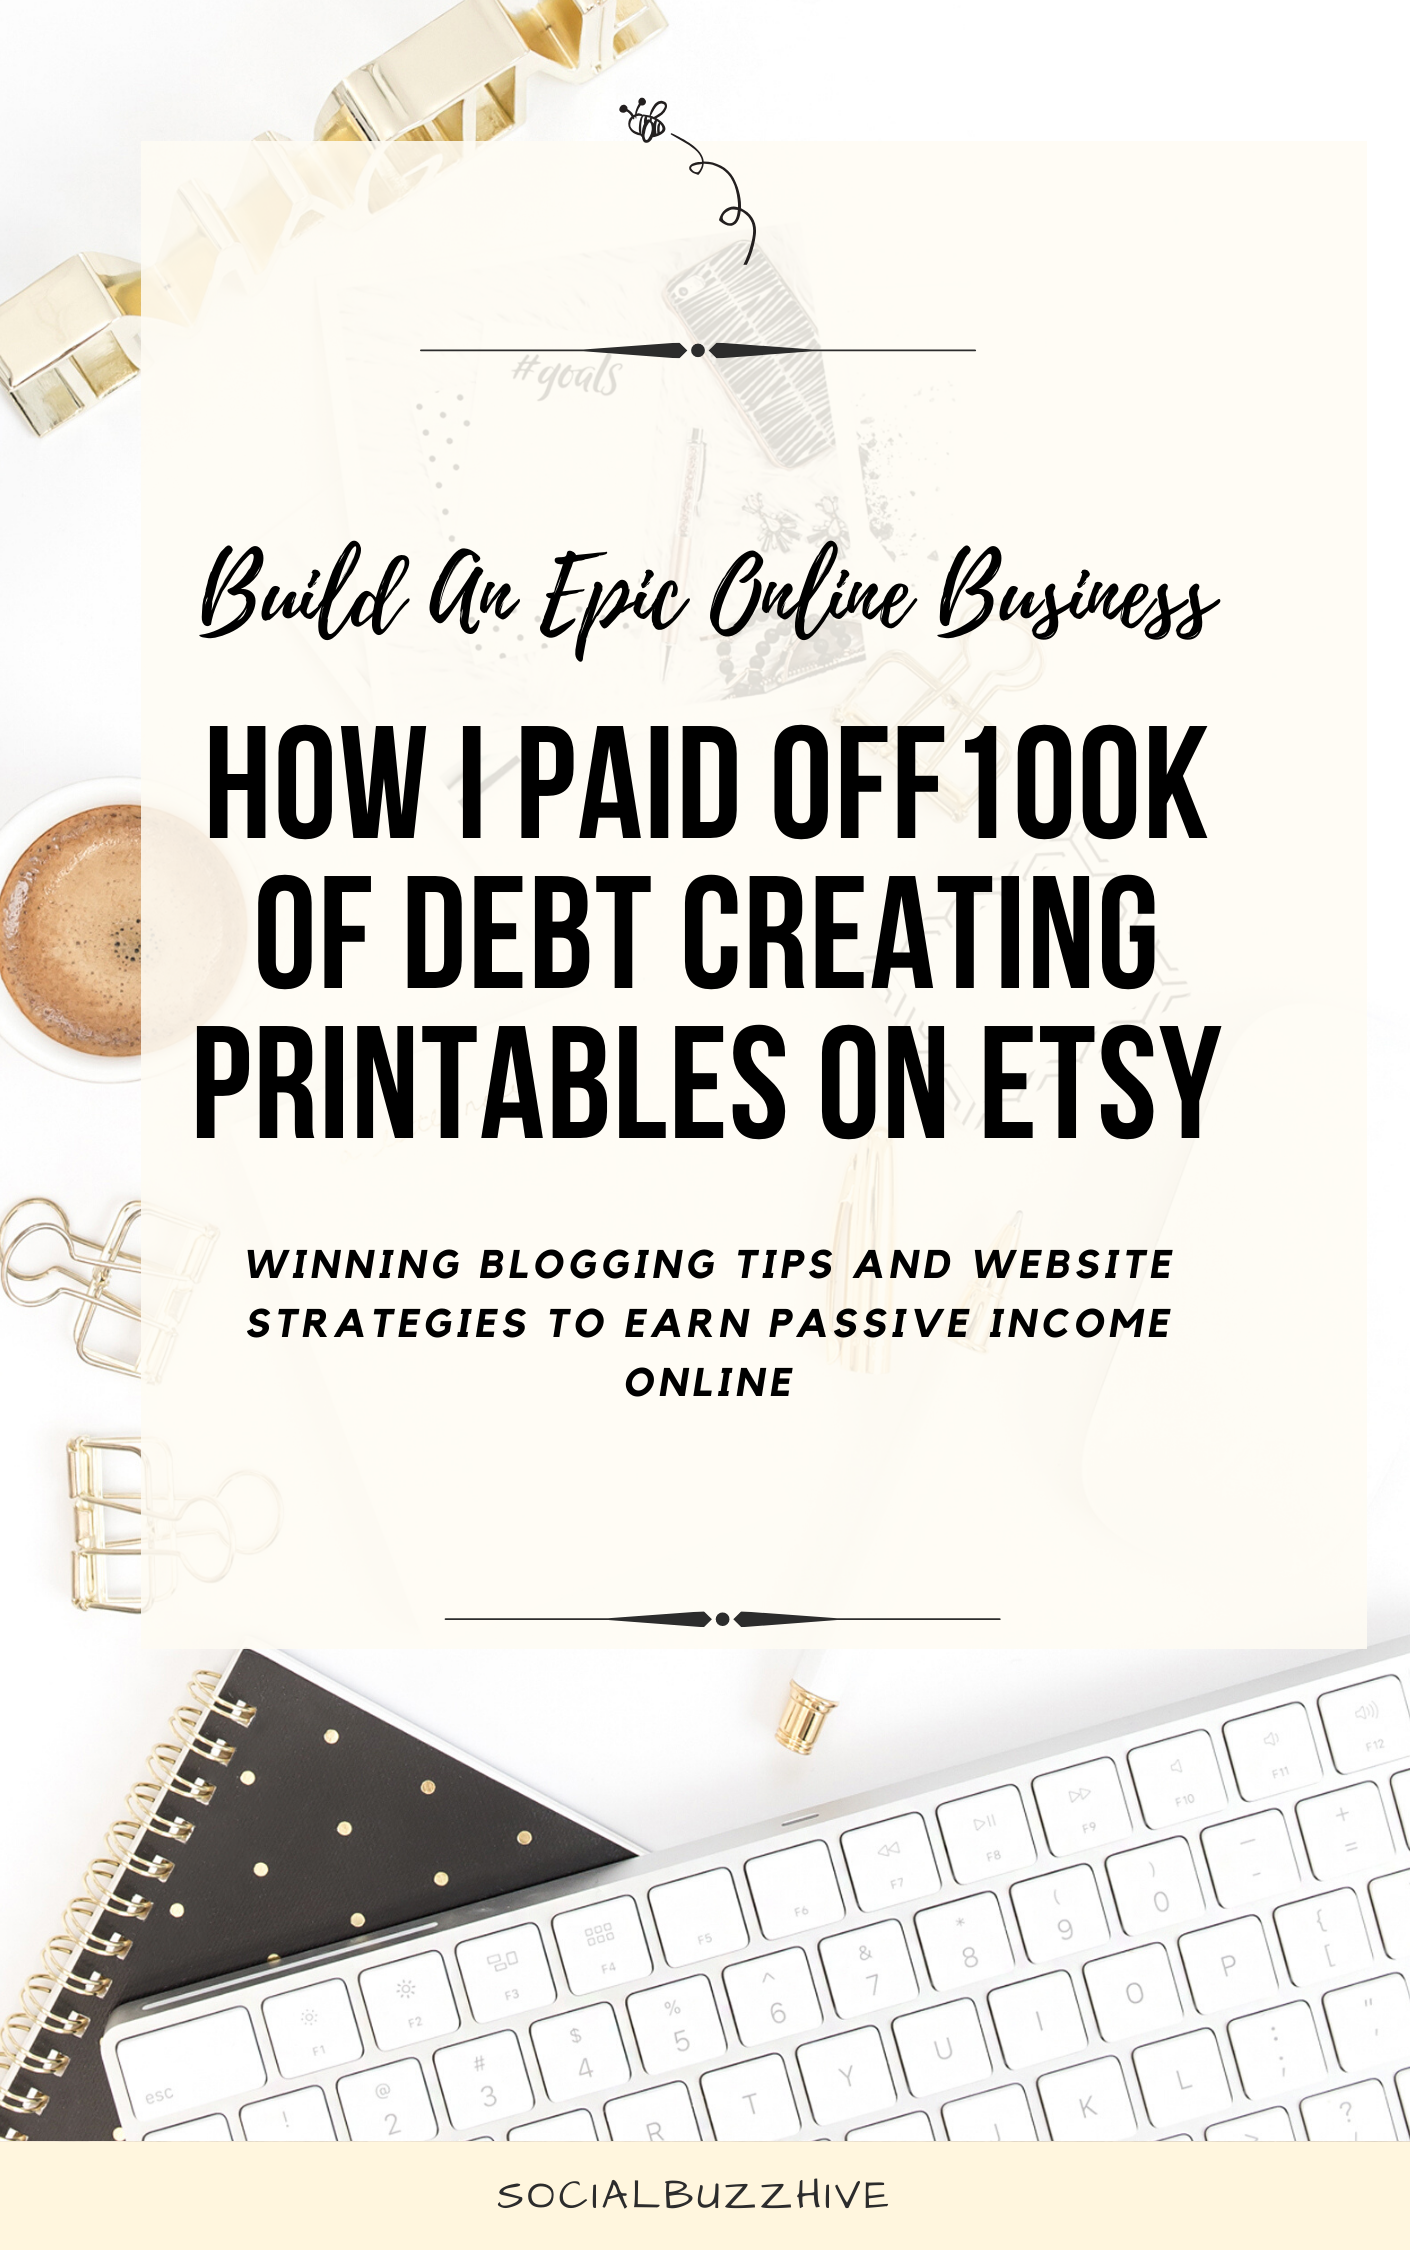 how I paid off 100K of debt printables on etsy